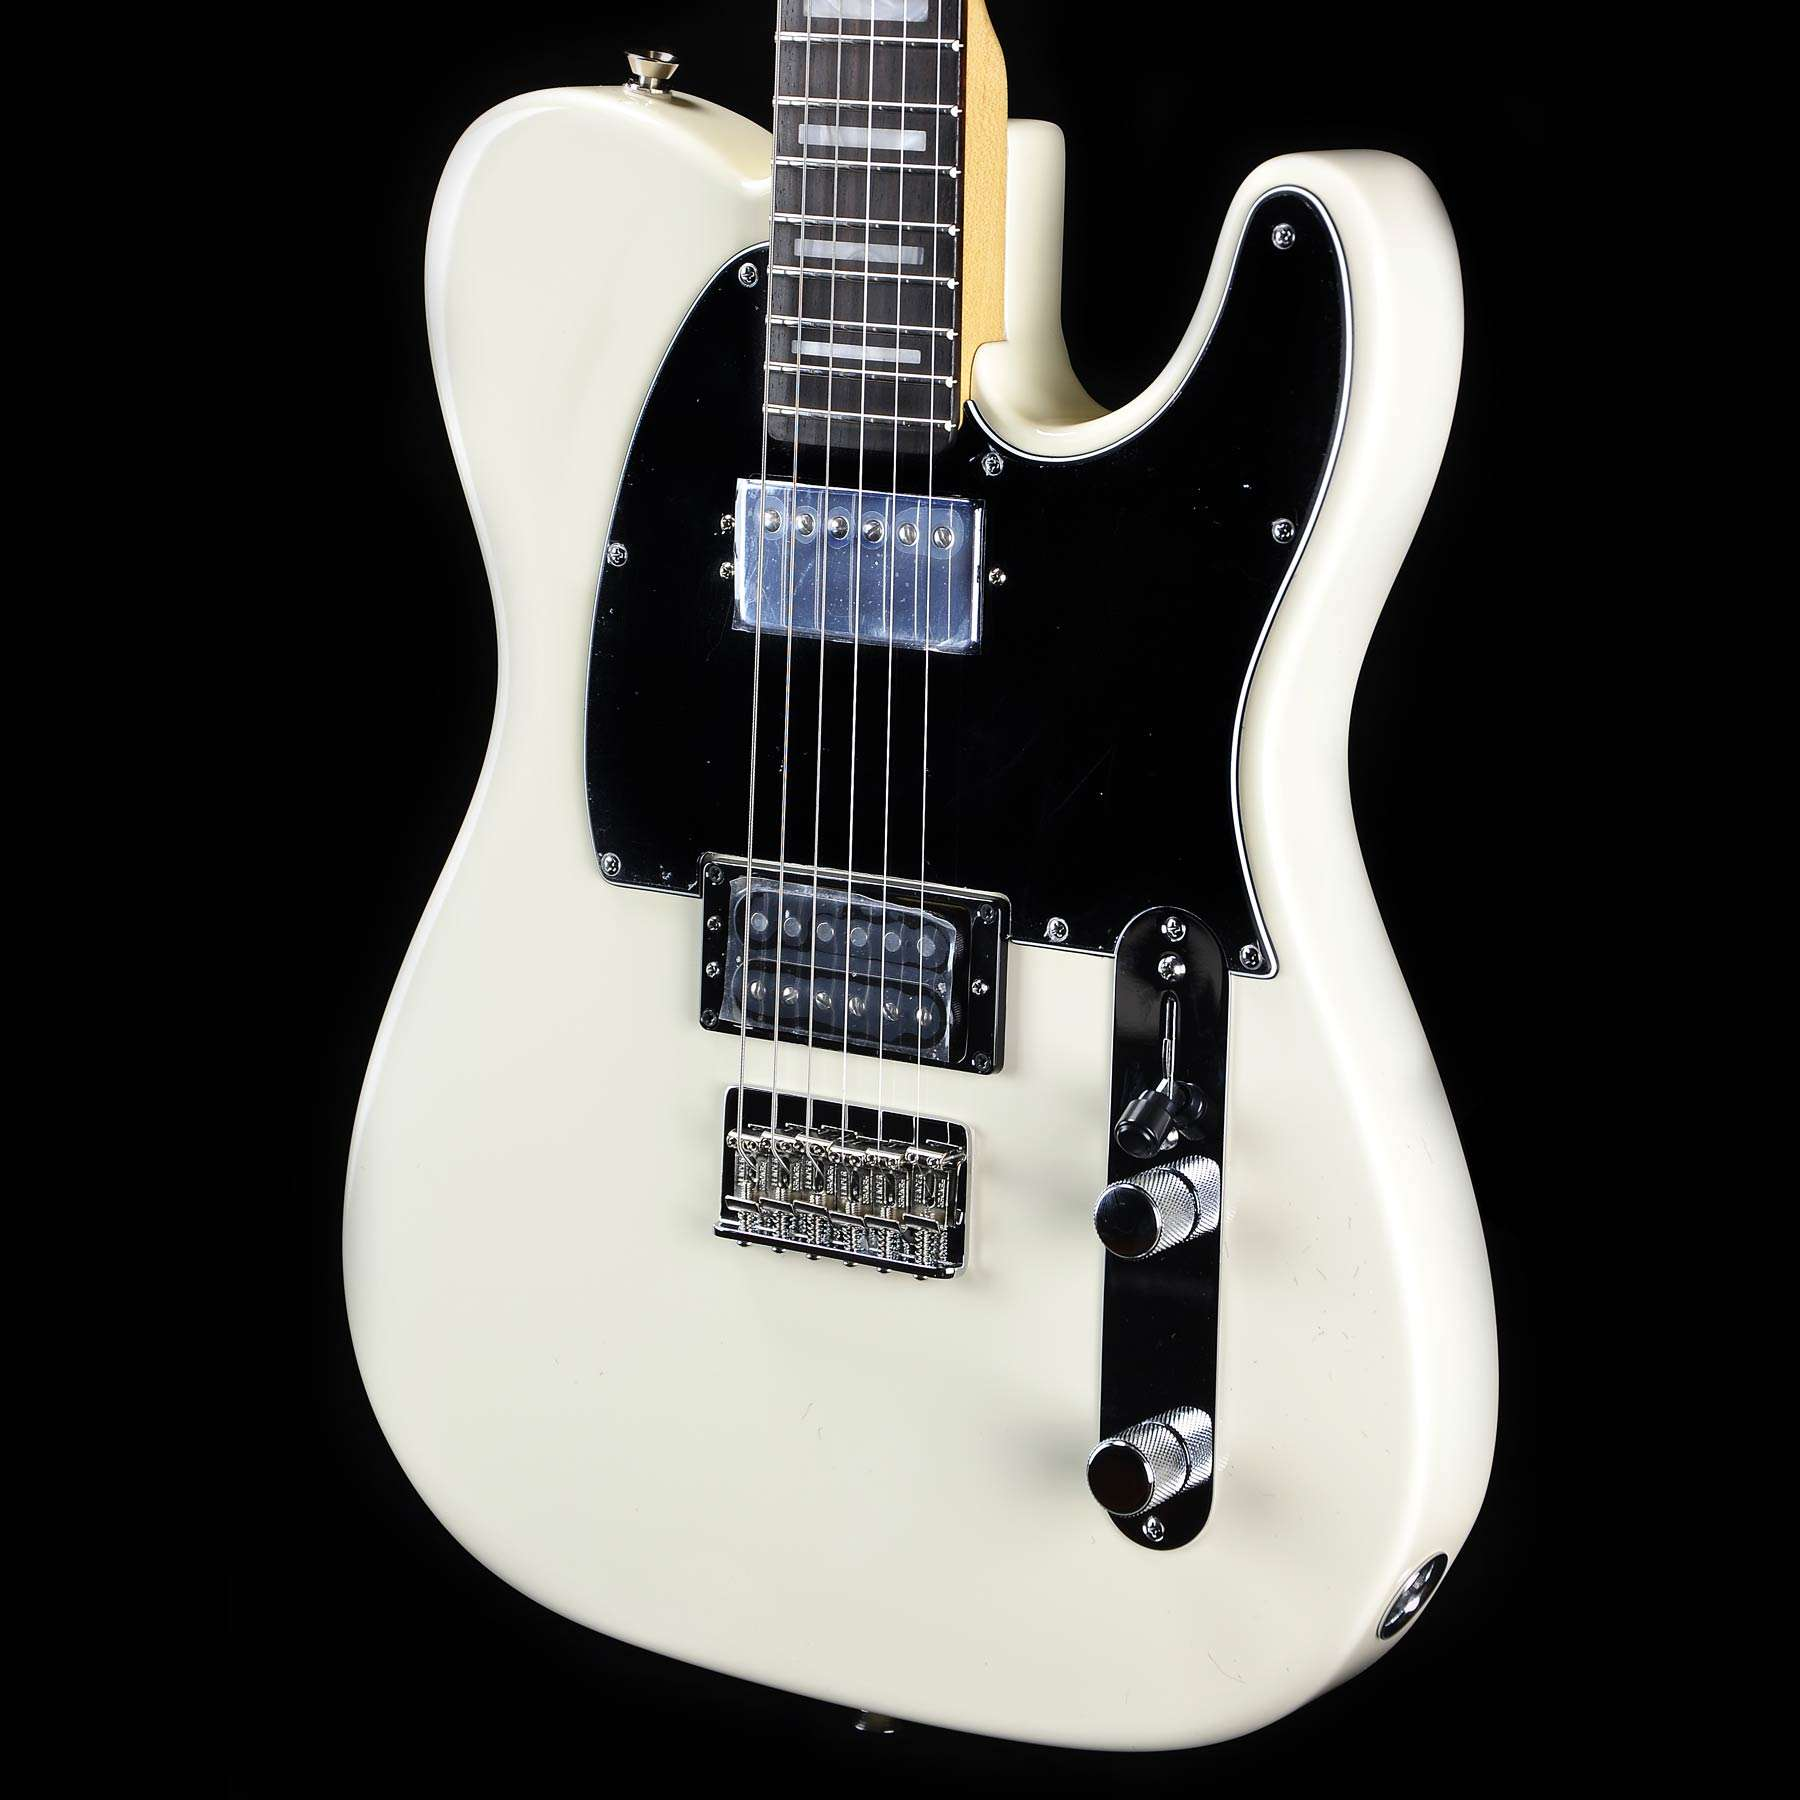 fender limited edition american standard telecaster hh olympic white wild west guitars. Black Bedroom Furniture Sets. Home Design Ideas